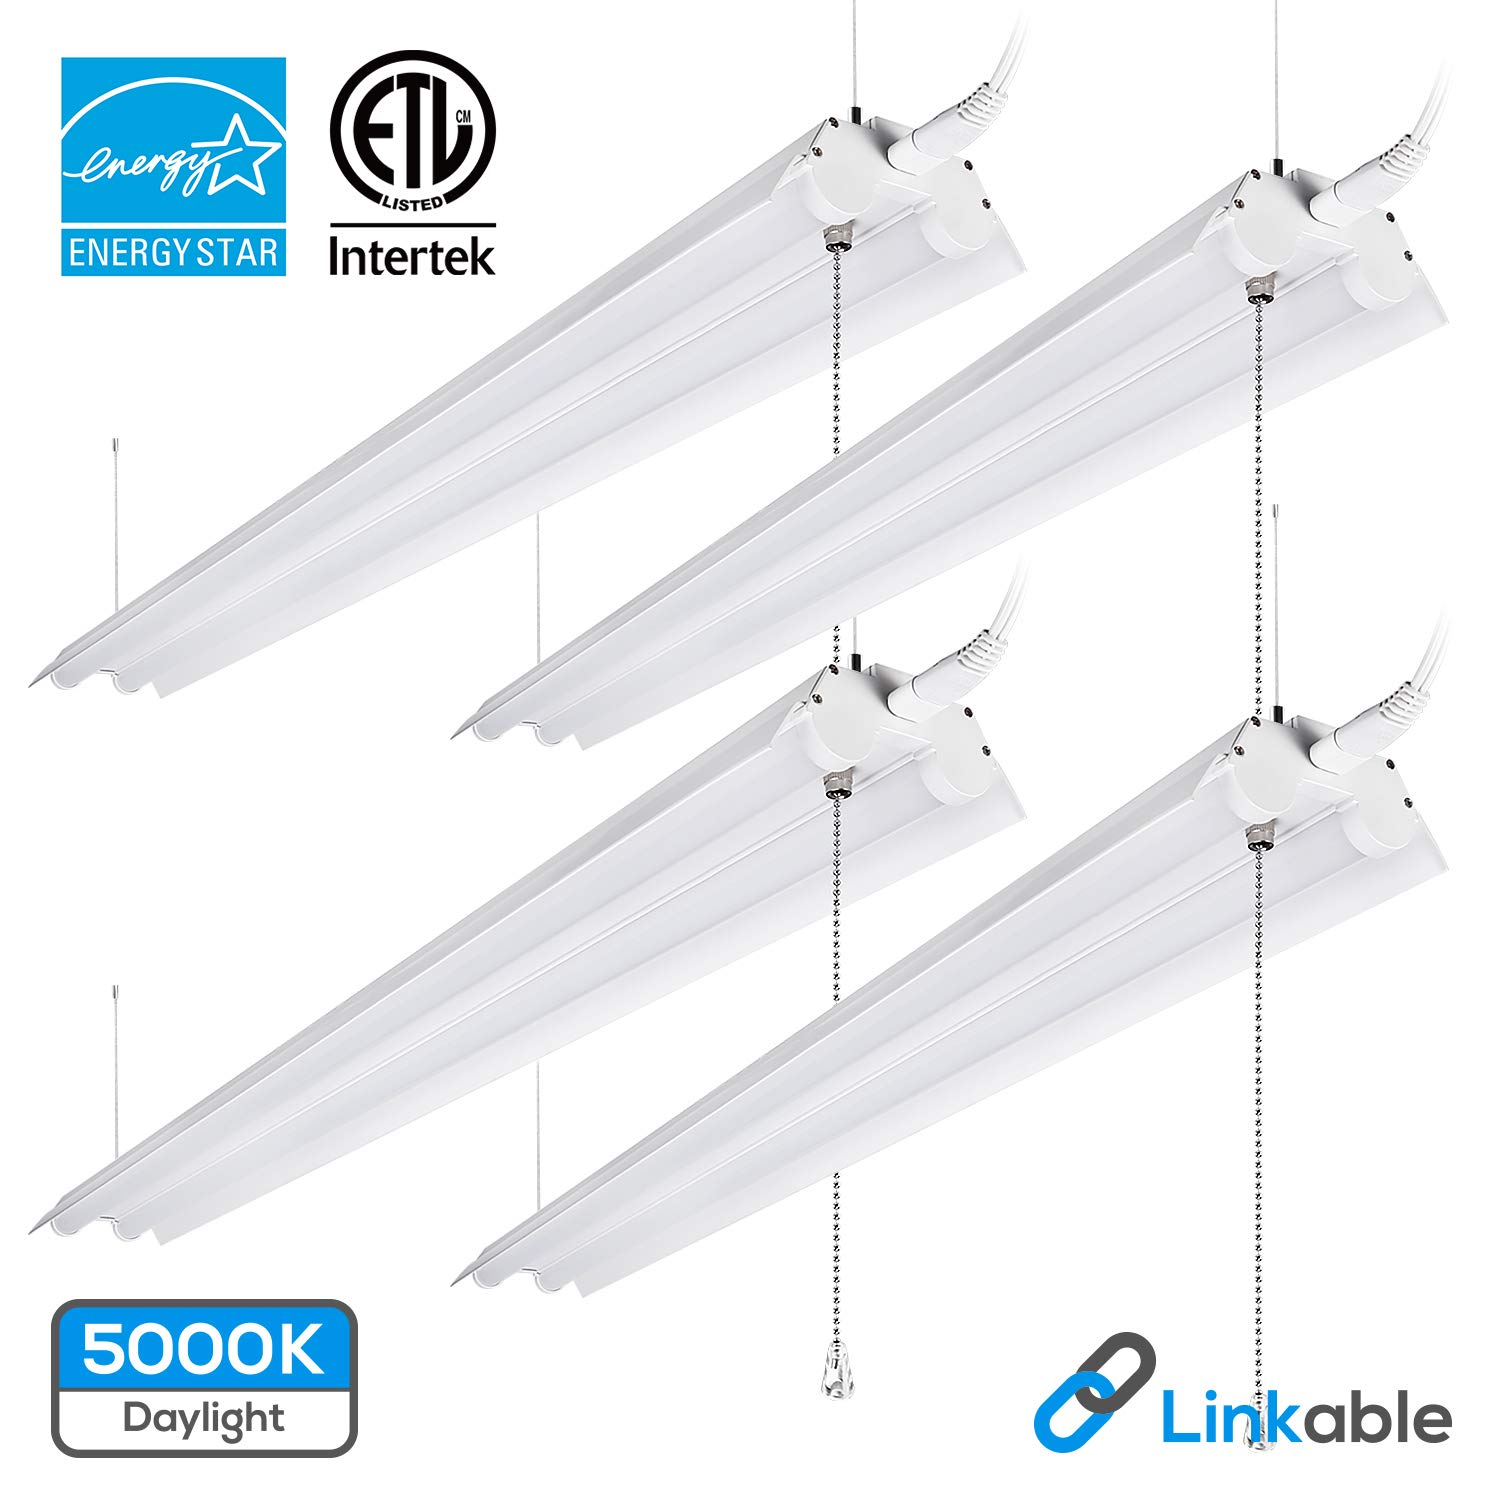 LeonLite 40W 4ft Linkable LED Utility Shop Light, Double-Tube T8 LED, 4000lm 120W Equivalent, ETL & Energy Star Certified Suit for Garage, Workbench, Basement, Warehouse, 5000K Daylight, 4 Pack by LEONLITE (Image #1)